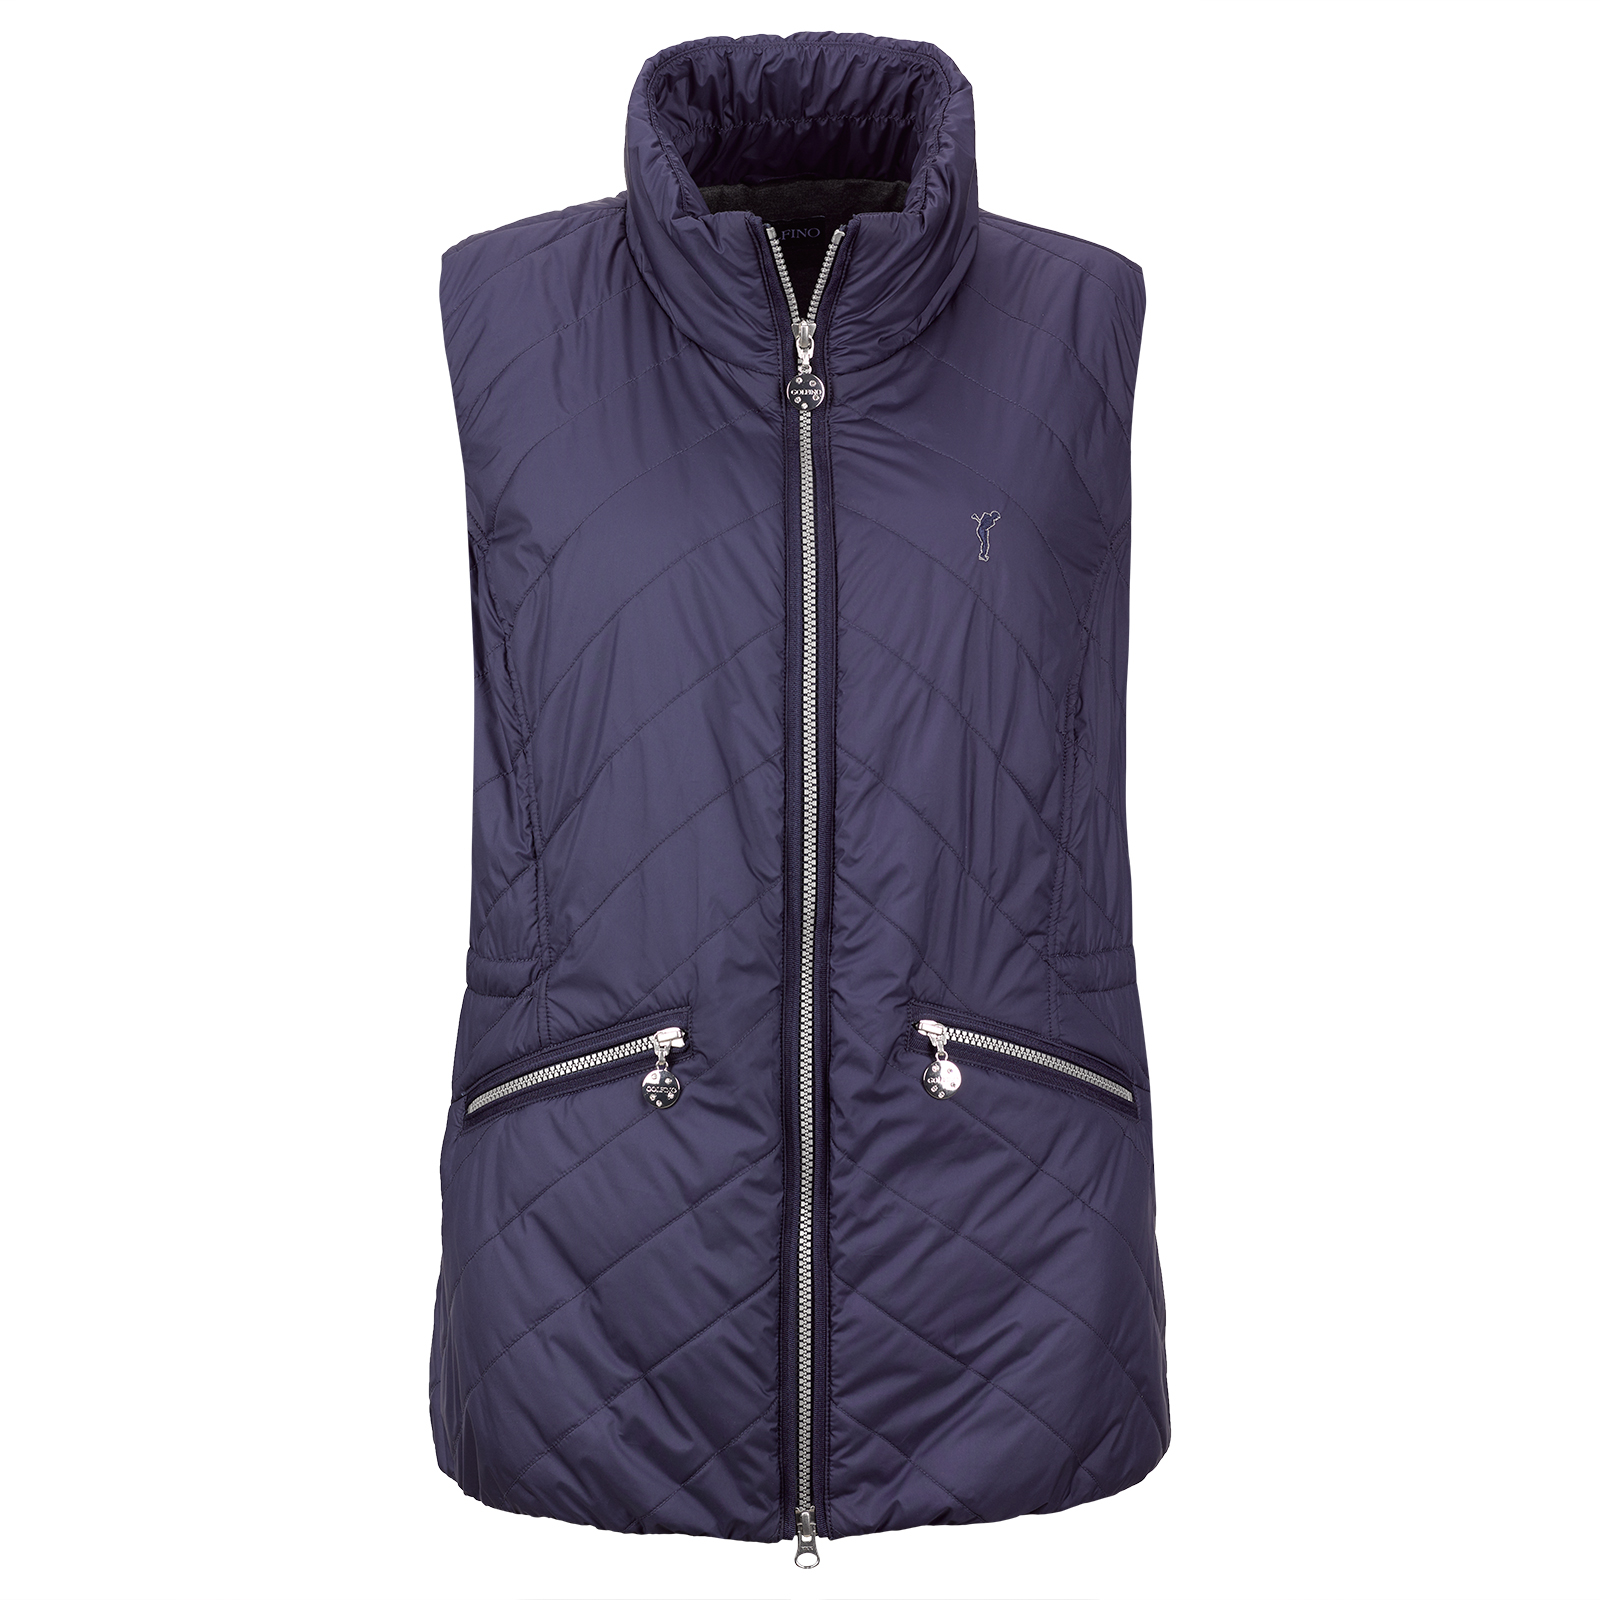 Windproof and breathable ladies' functional golf vest